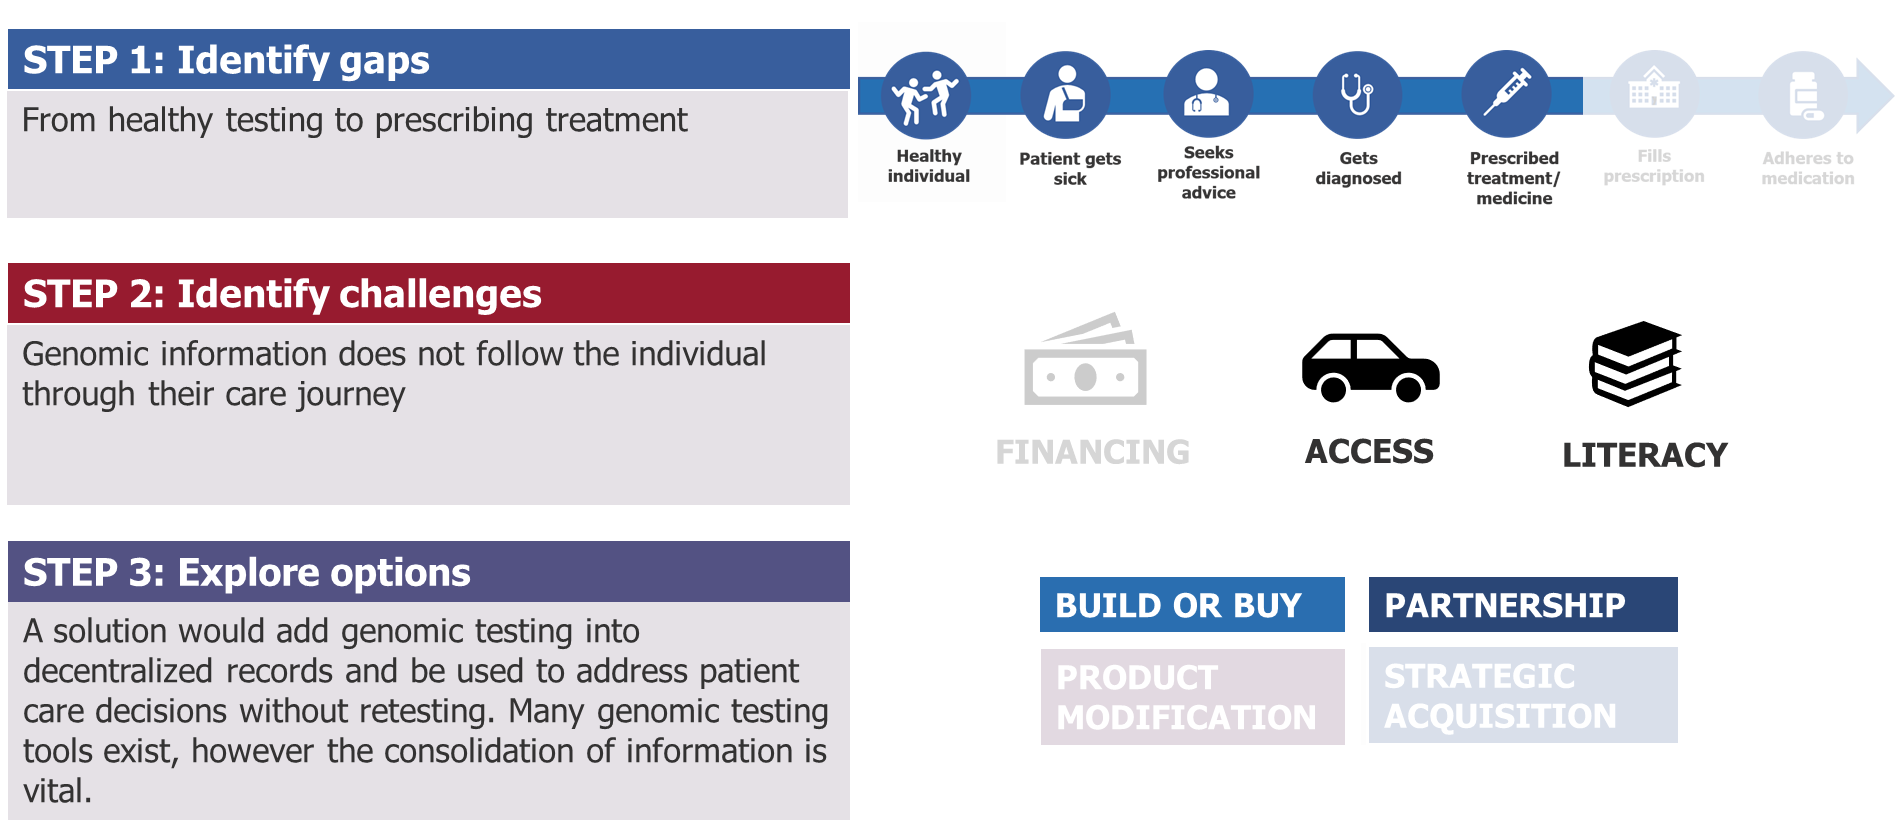 Graphic showing a three-step methodology for developing holistic solutions for healthcare patients.